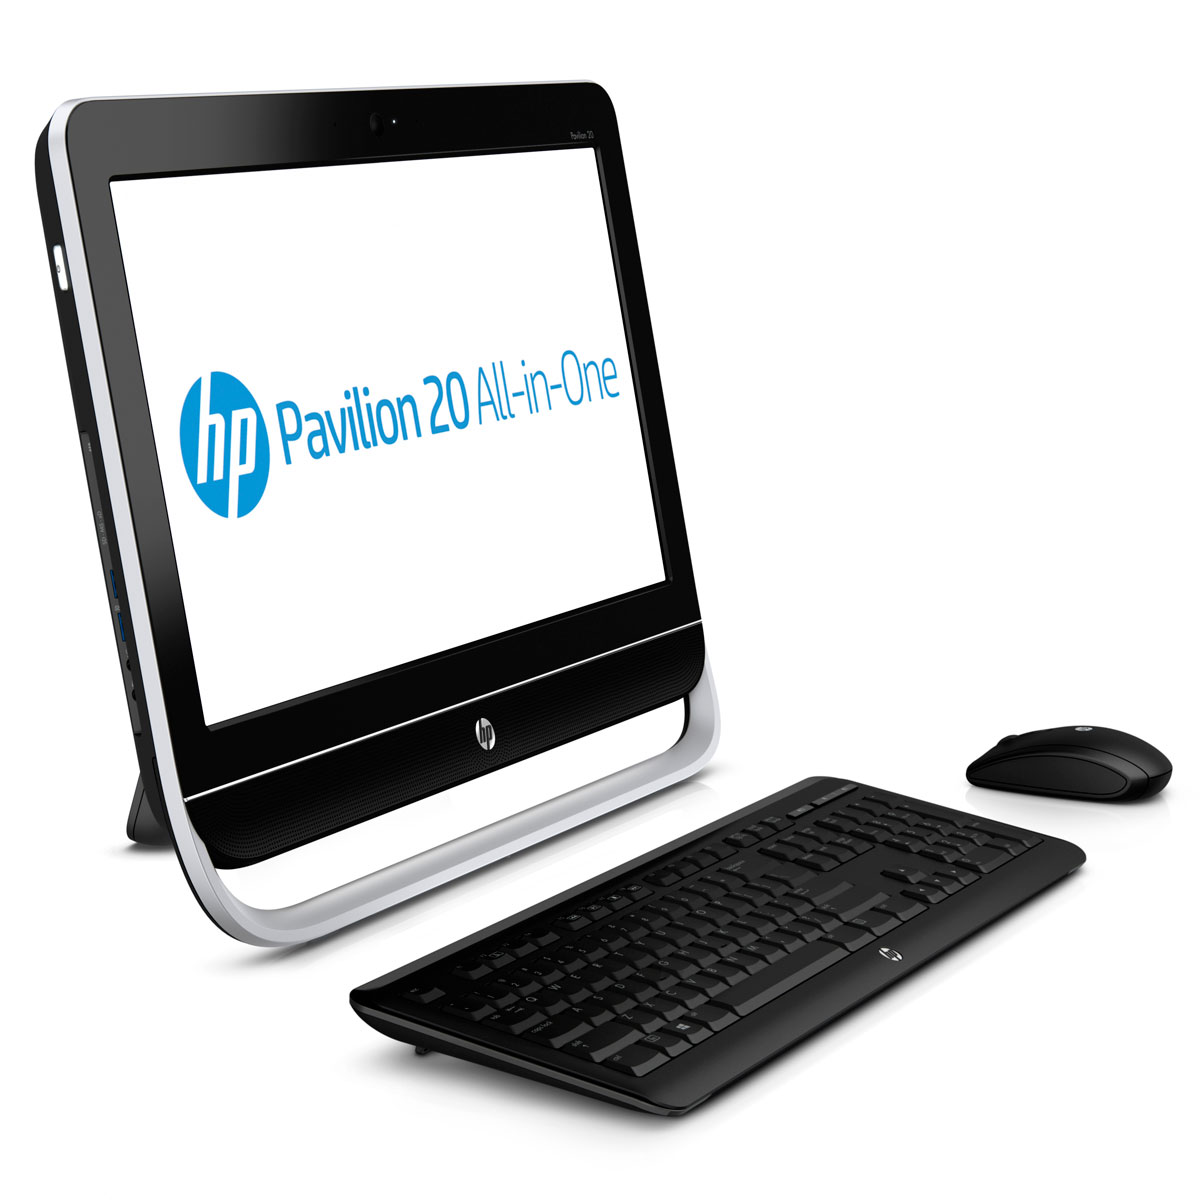 "PC de bureau HP Pavilion 20-b120ef (D2M53EA) AMD Double-Coeur E1-1200 6 Go 1 To LED 20"" Graveur DVD Wi-Fi N Webcam Windows 8 64 bits"